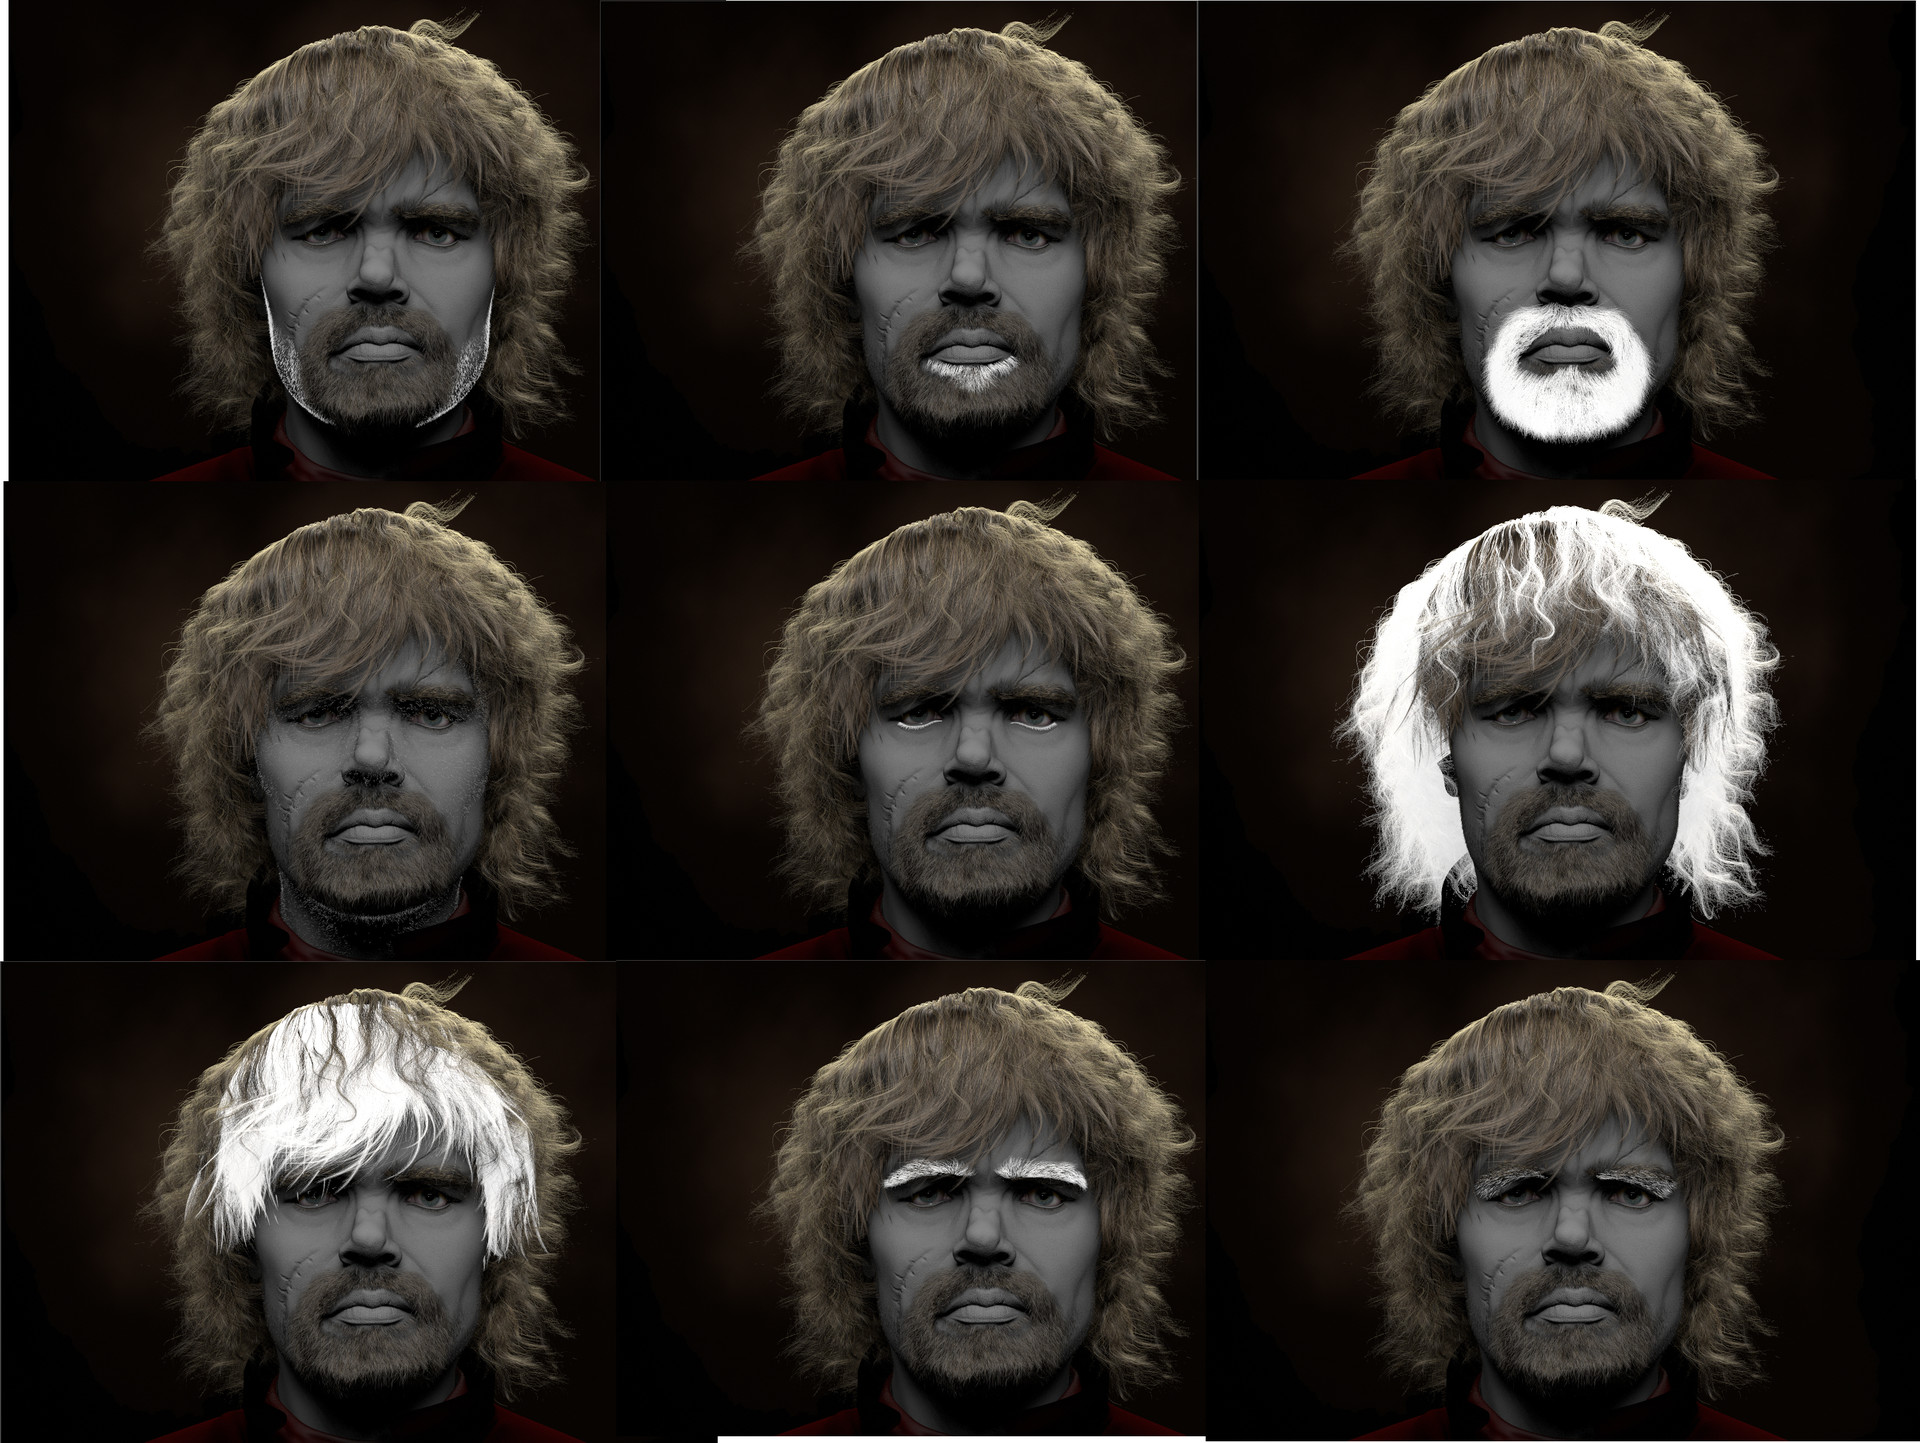 Tyrion Lannister-Hair layers